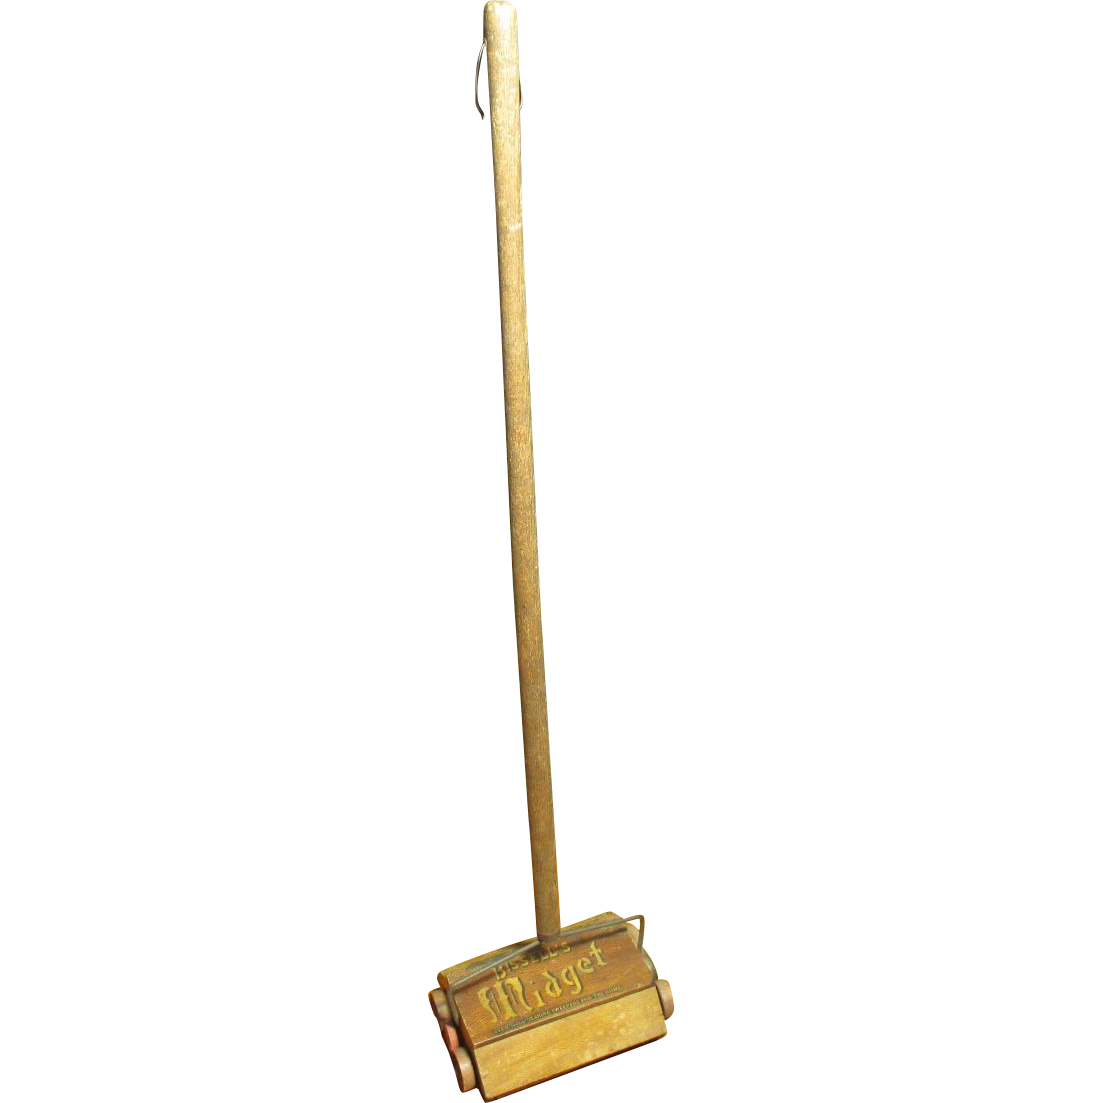 wonderful old child sized bissell midget cyco ball bearing carpet sweeper grand rapids michigan - Carpet Sweeper